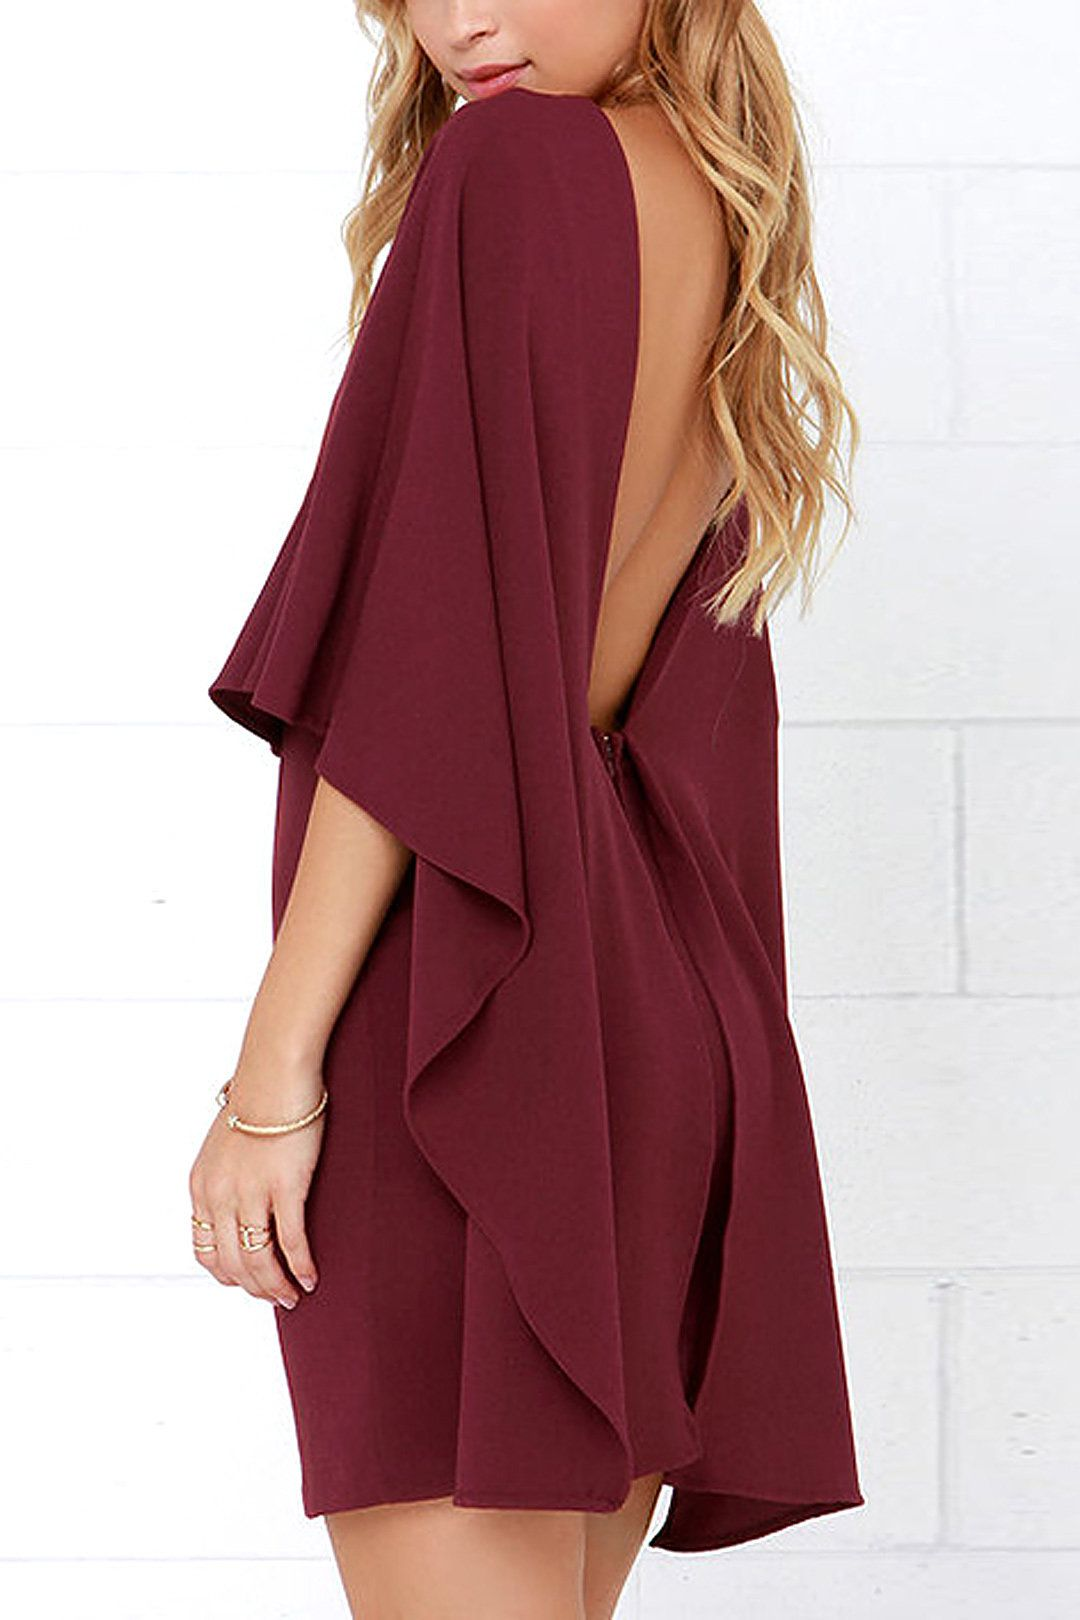 Cape backless dress in burgundy us my style pinterest